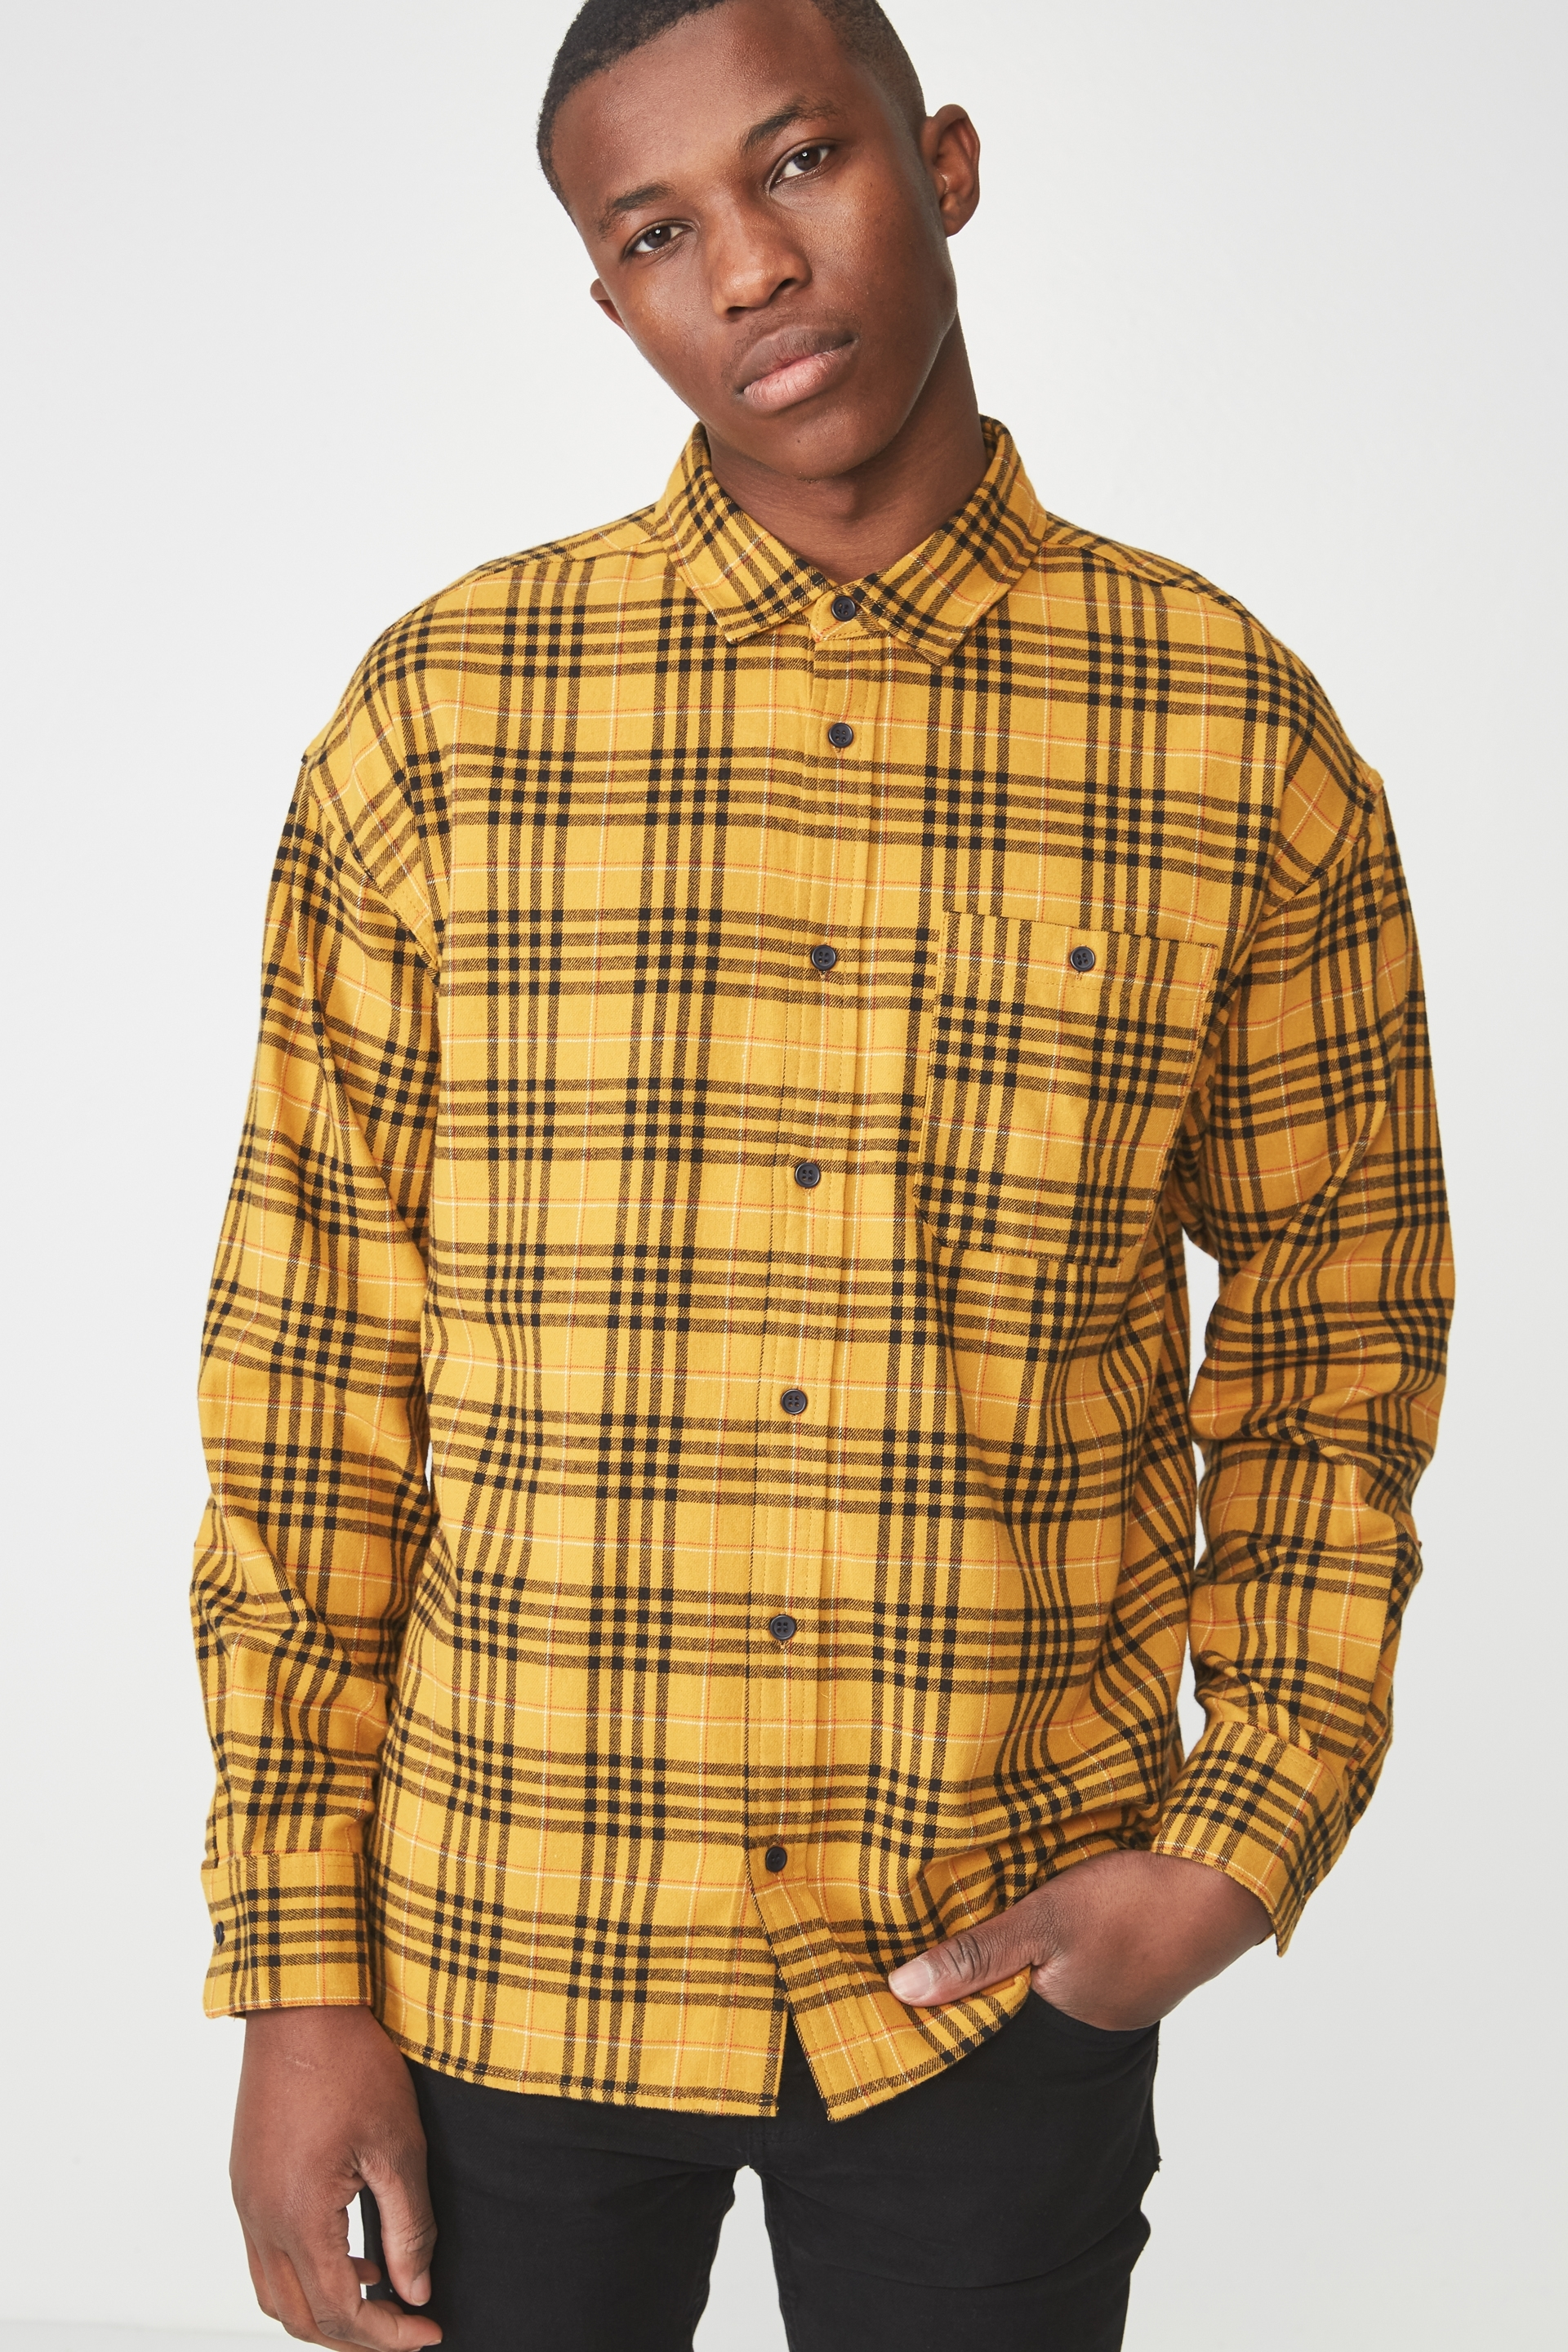 Cotton On Men - Rugged Long Sleeve Shirt - Yellow check 9352403571757